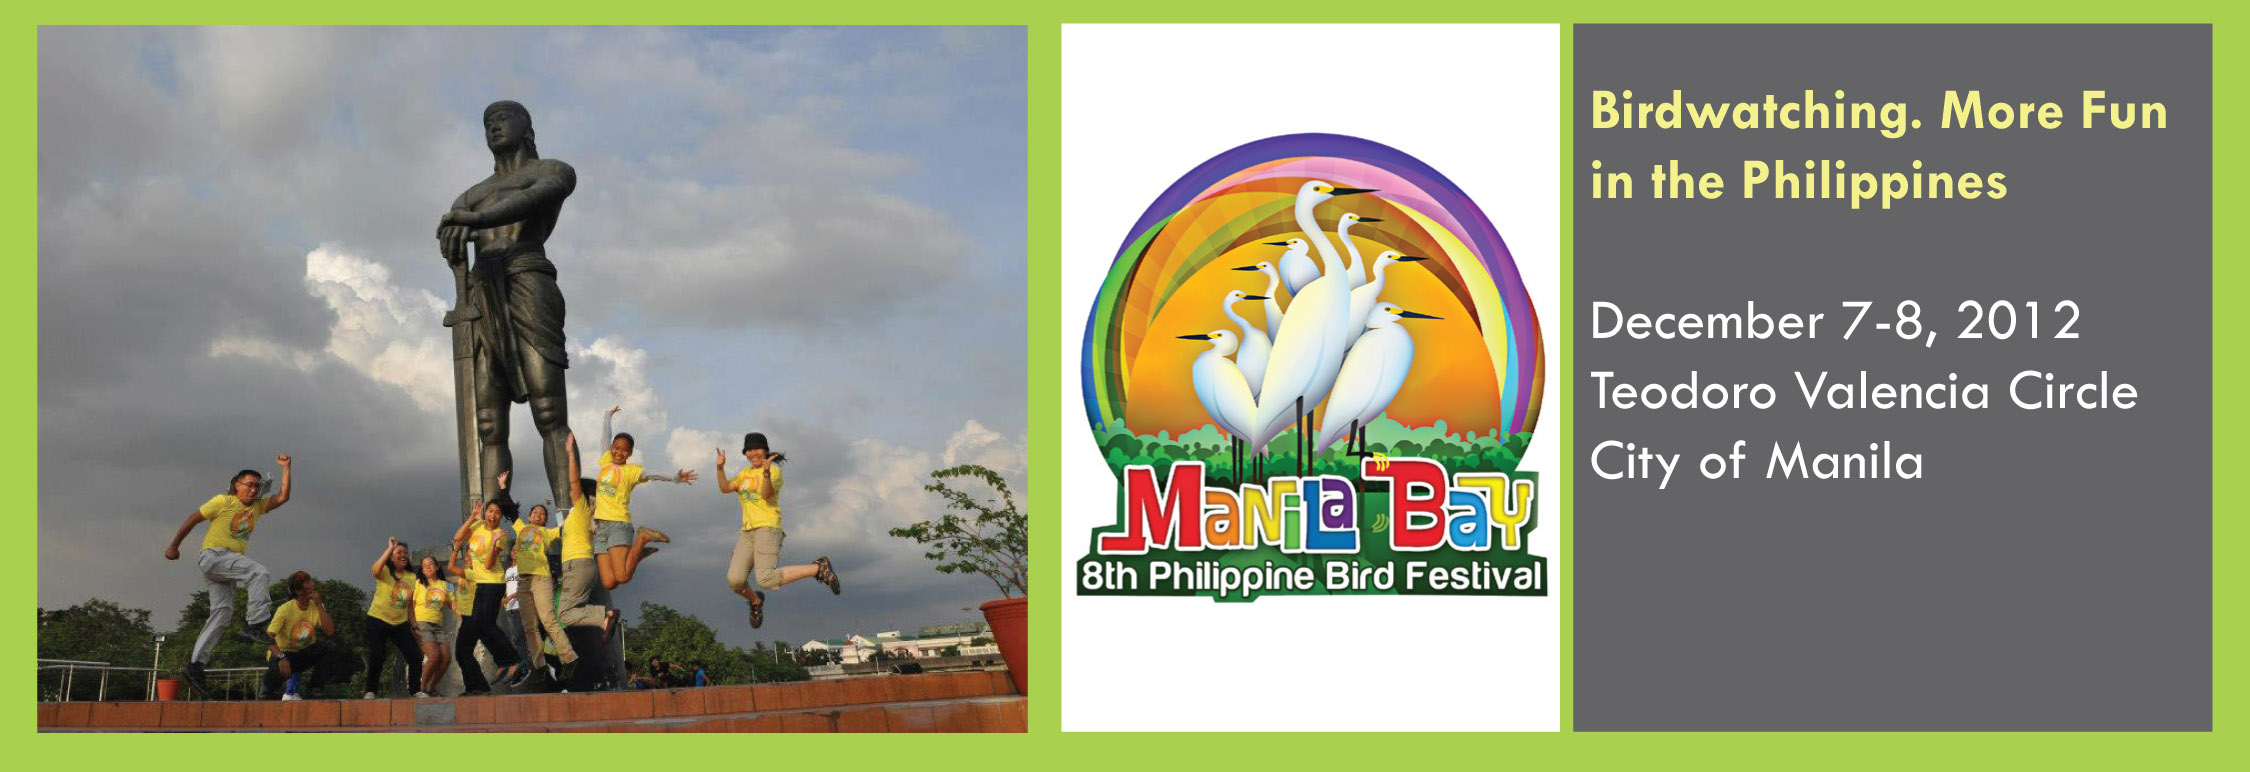 8thPhilippine Bird Festival